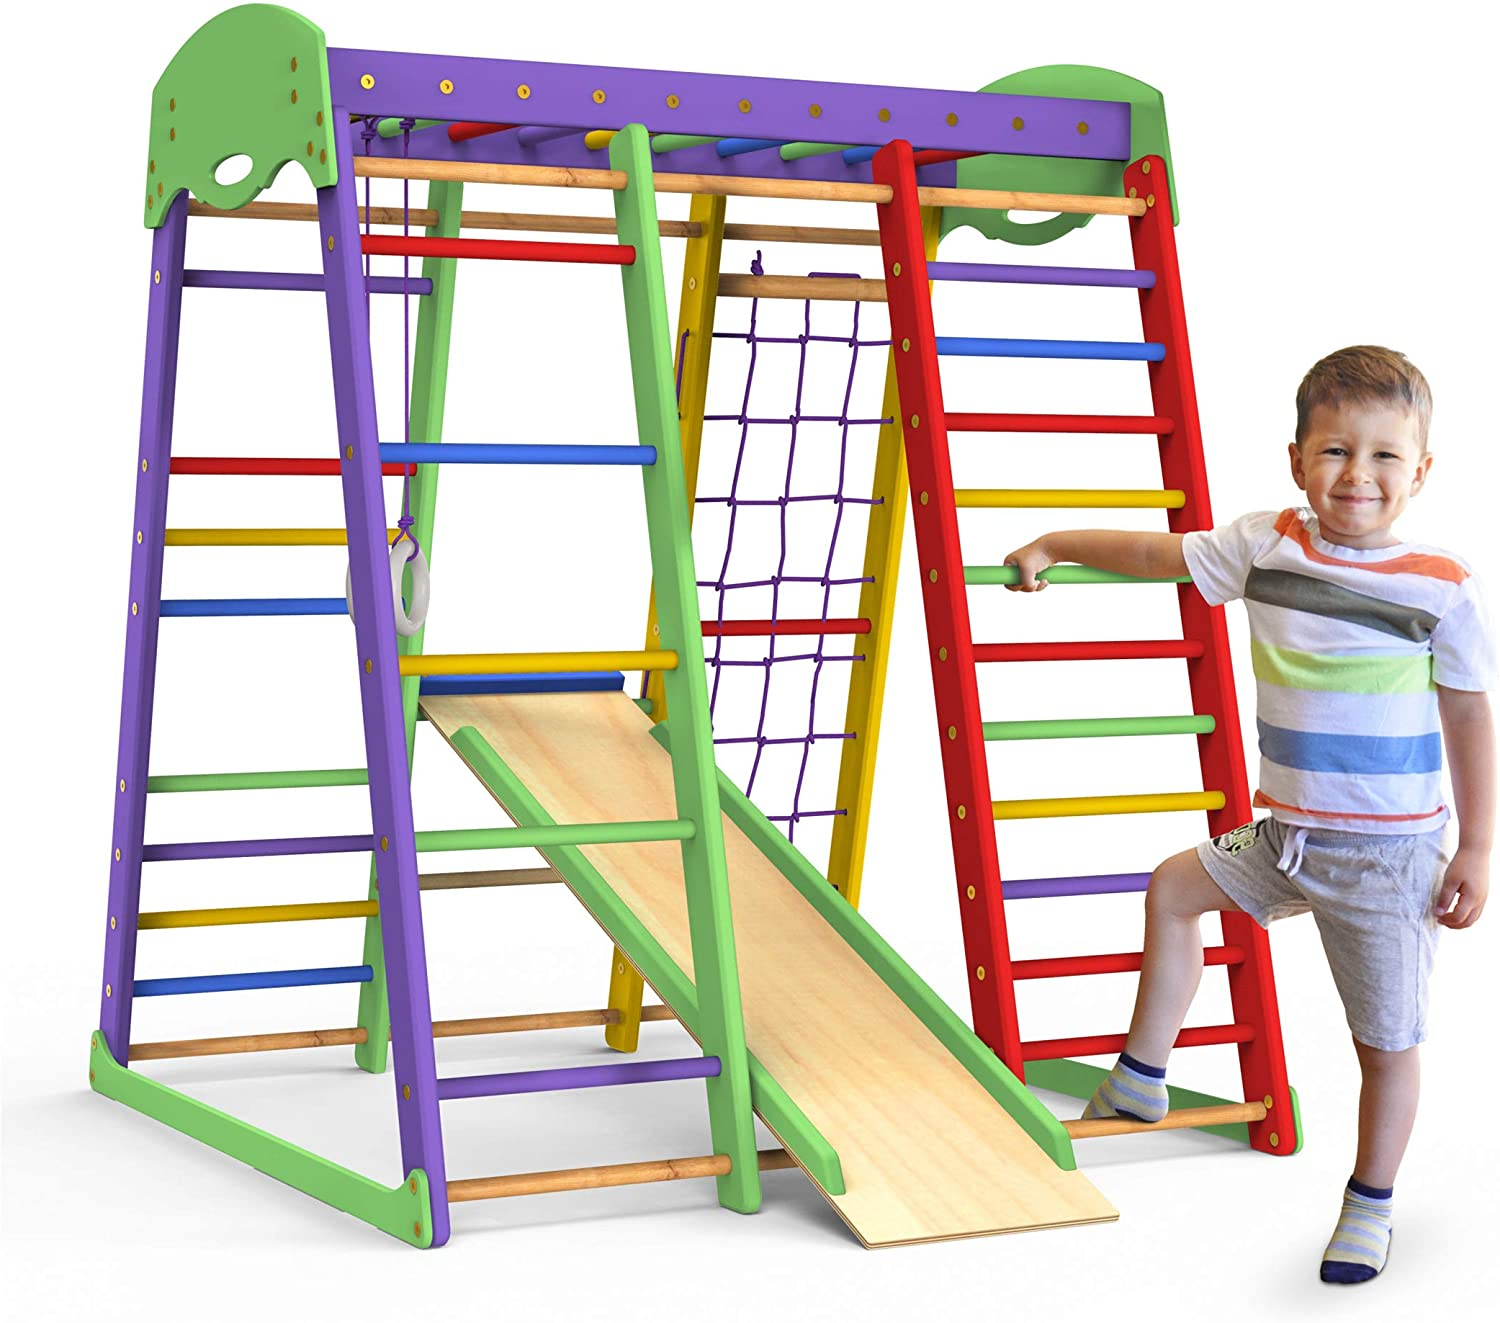 Toddler Climber Monkey Bars Wedanta Indoor Playground Gymnastics Rings Backyard Playsets for Kids SportWood Playset for Toddlers Jungle Gym